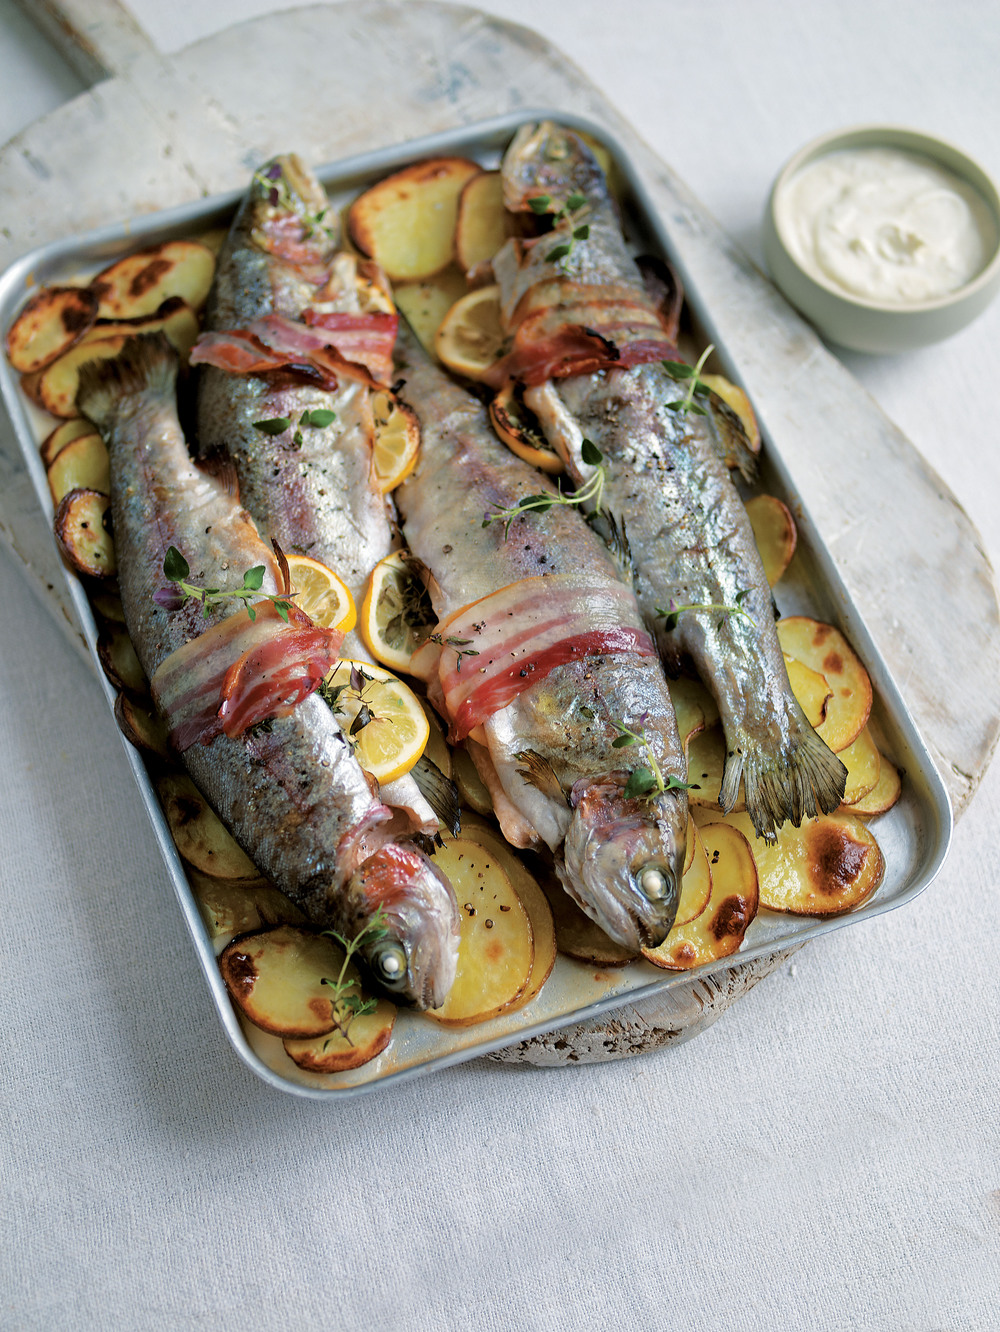 Baked Bacon-Wrapped Trout with Horseradish Sauce recipe